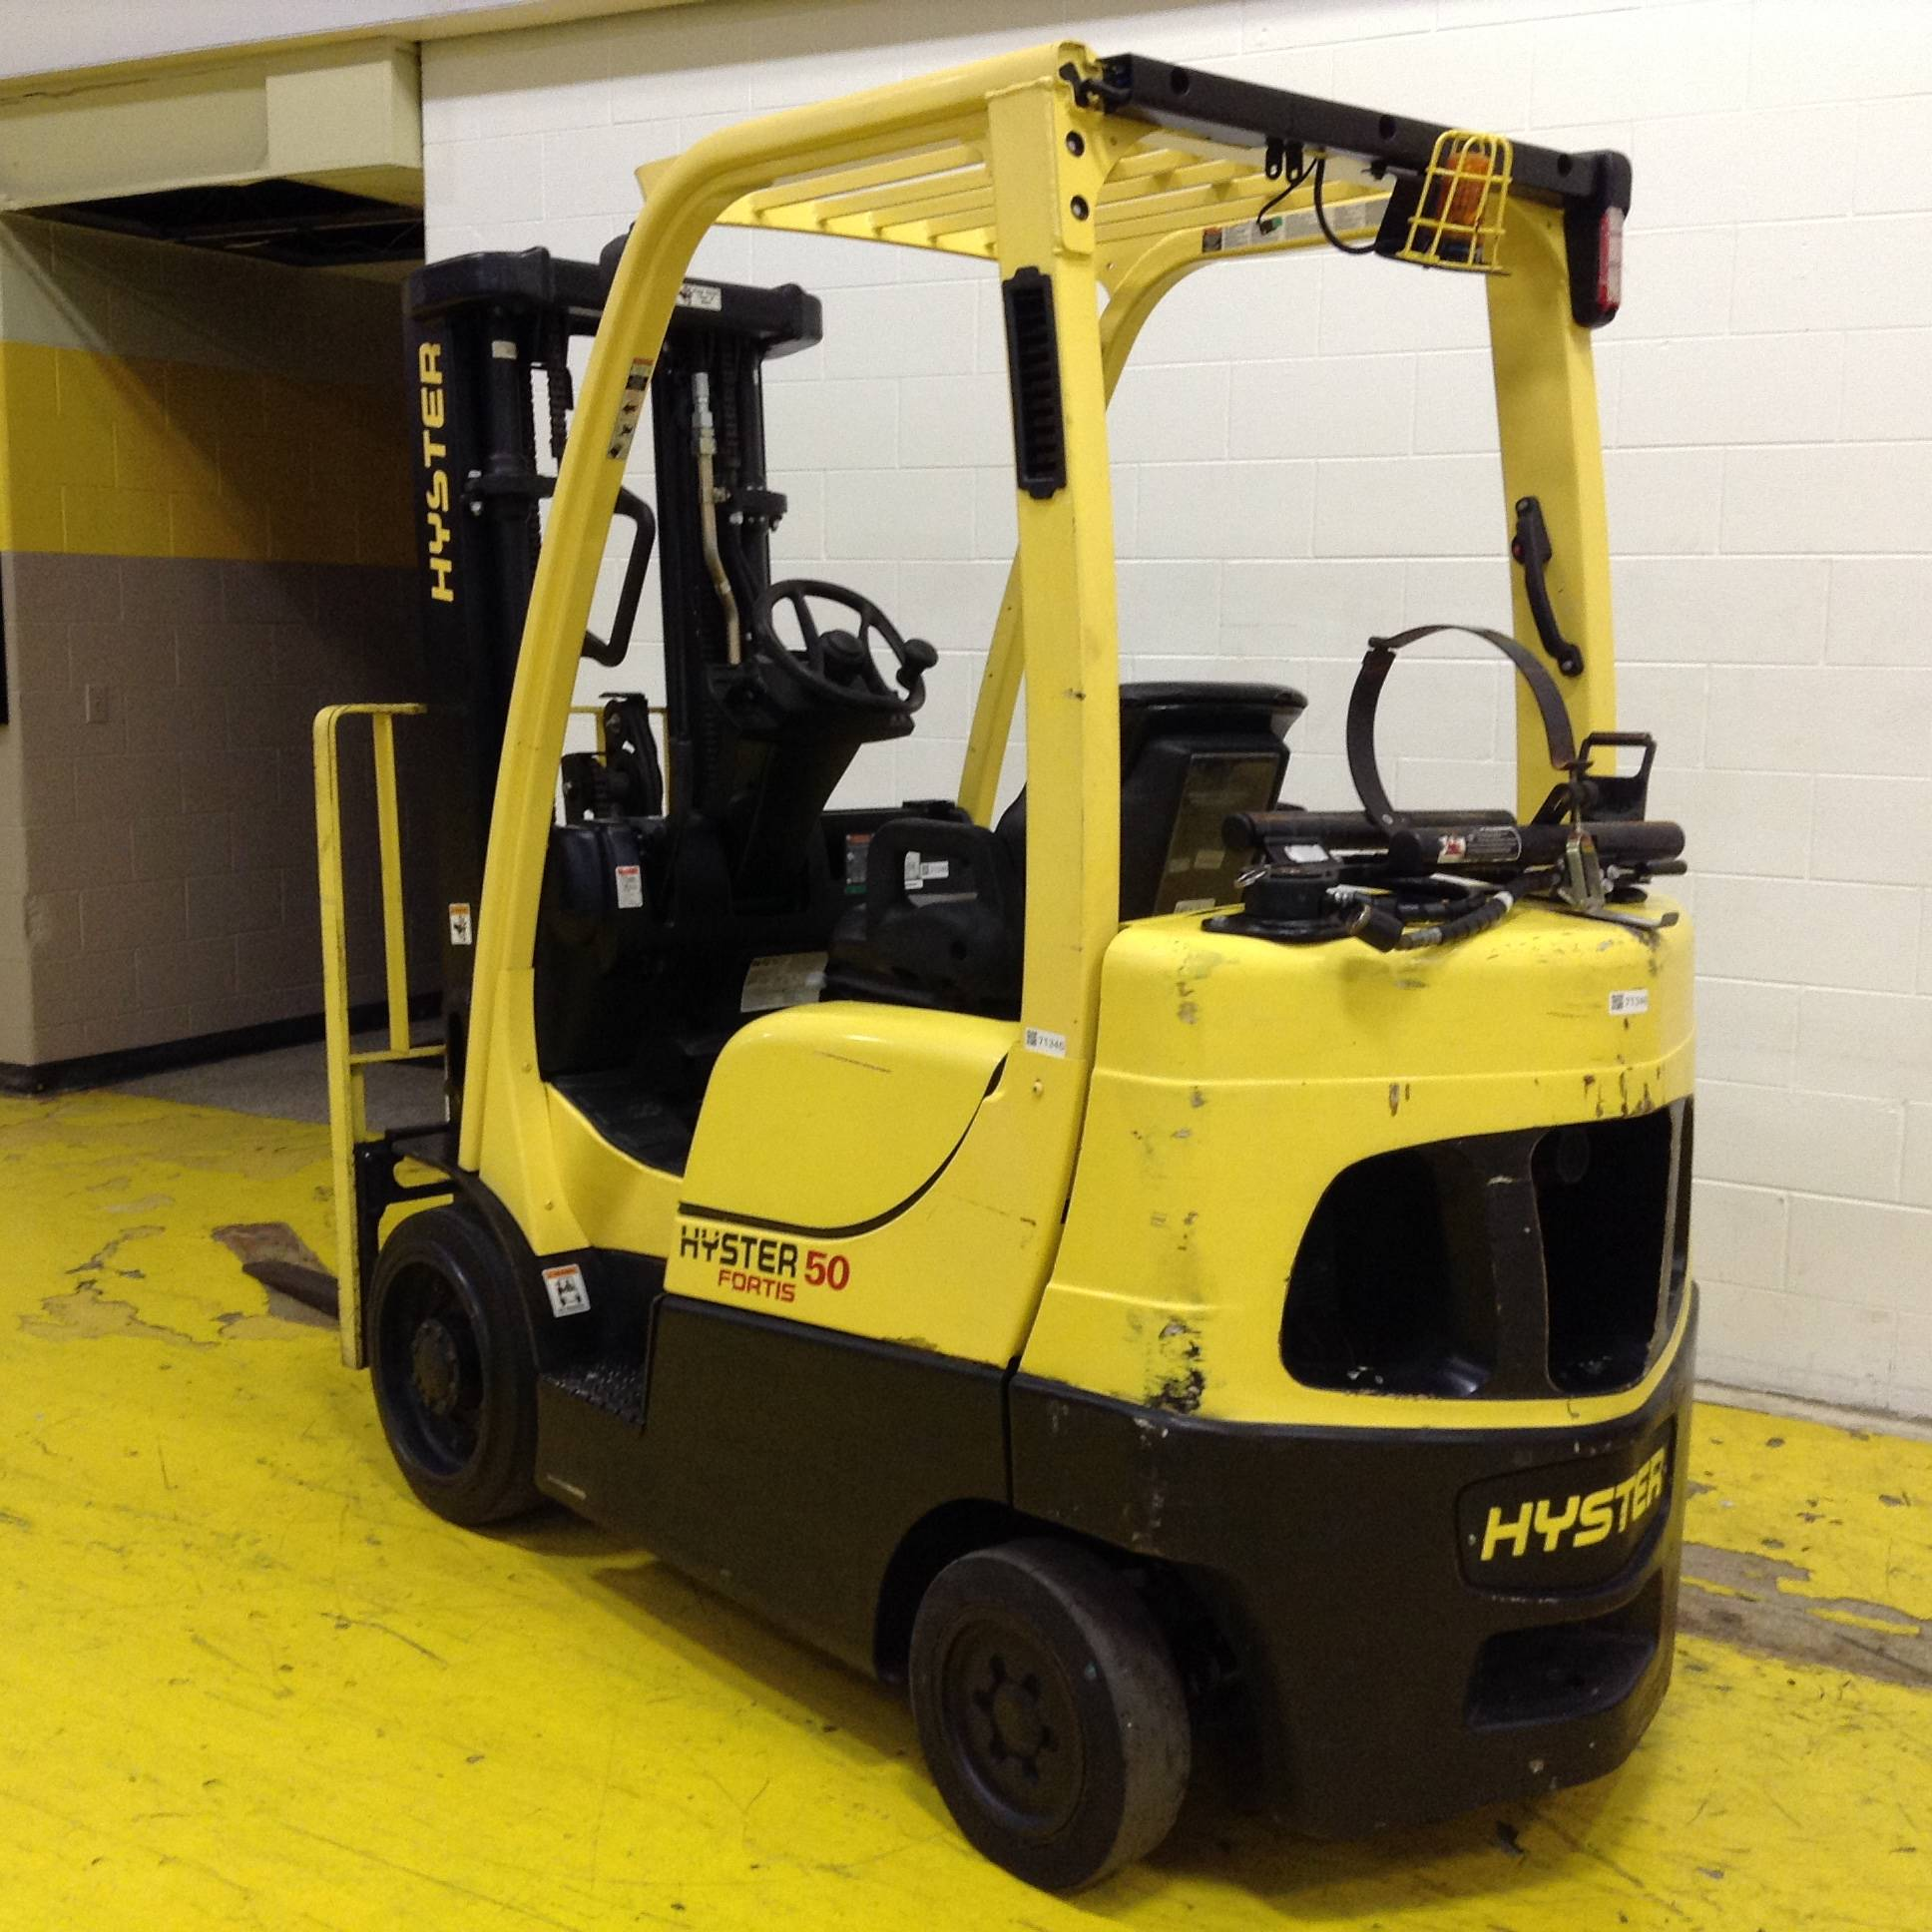 Hyster 50 Forklift Dashboard Lights Wiring Diagram For Error Confusing You 10 Cft3 B3m48sd 4300 Case Ih Fault Codes Dtc List Farmall Series Download Free